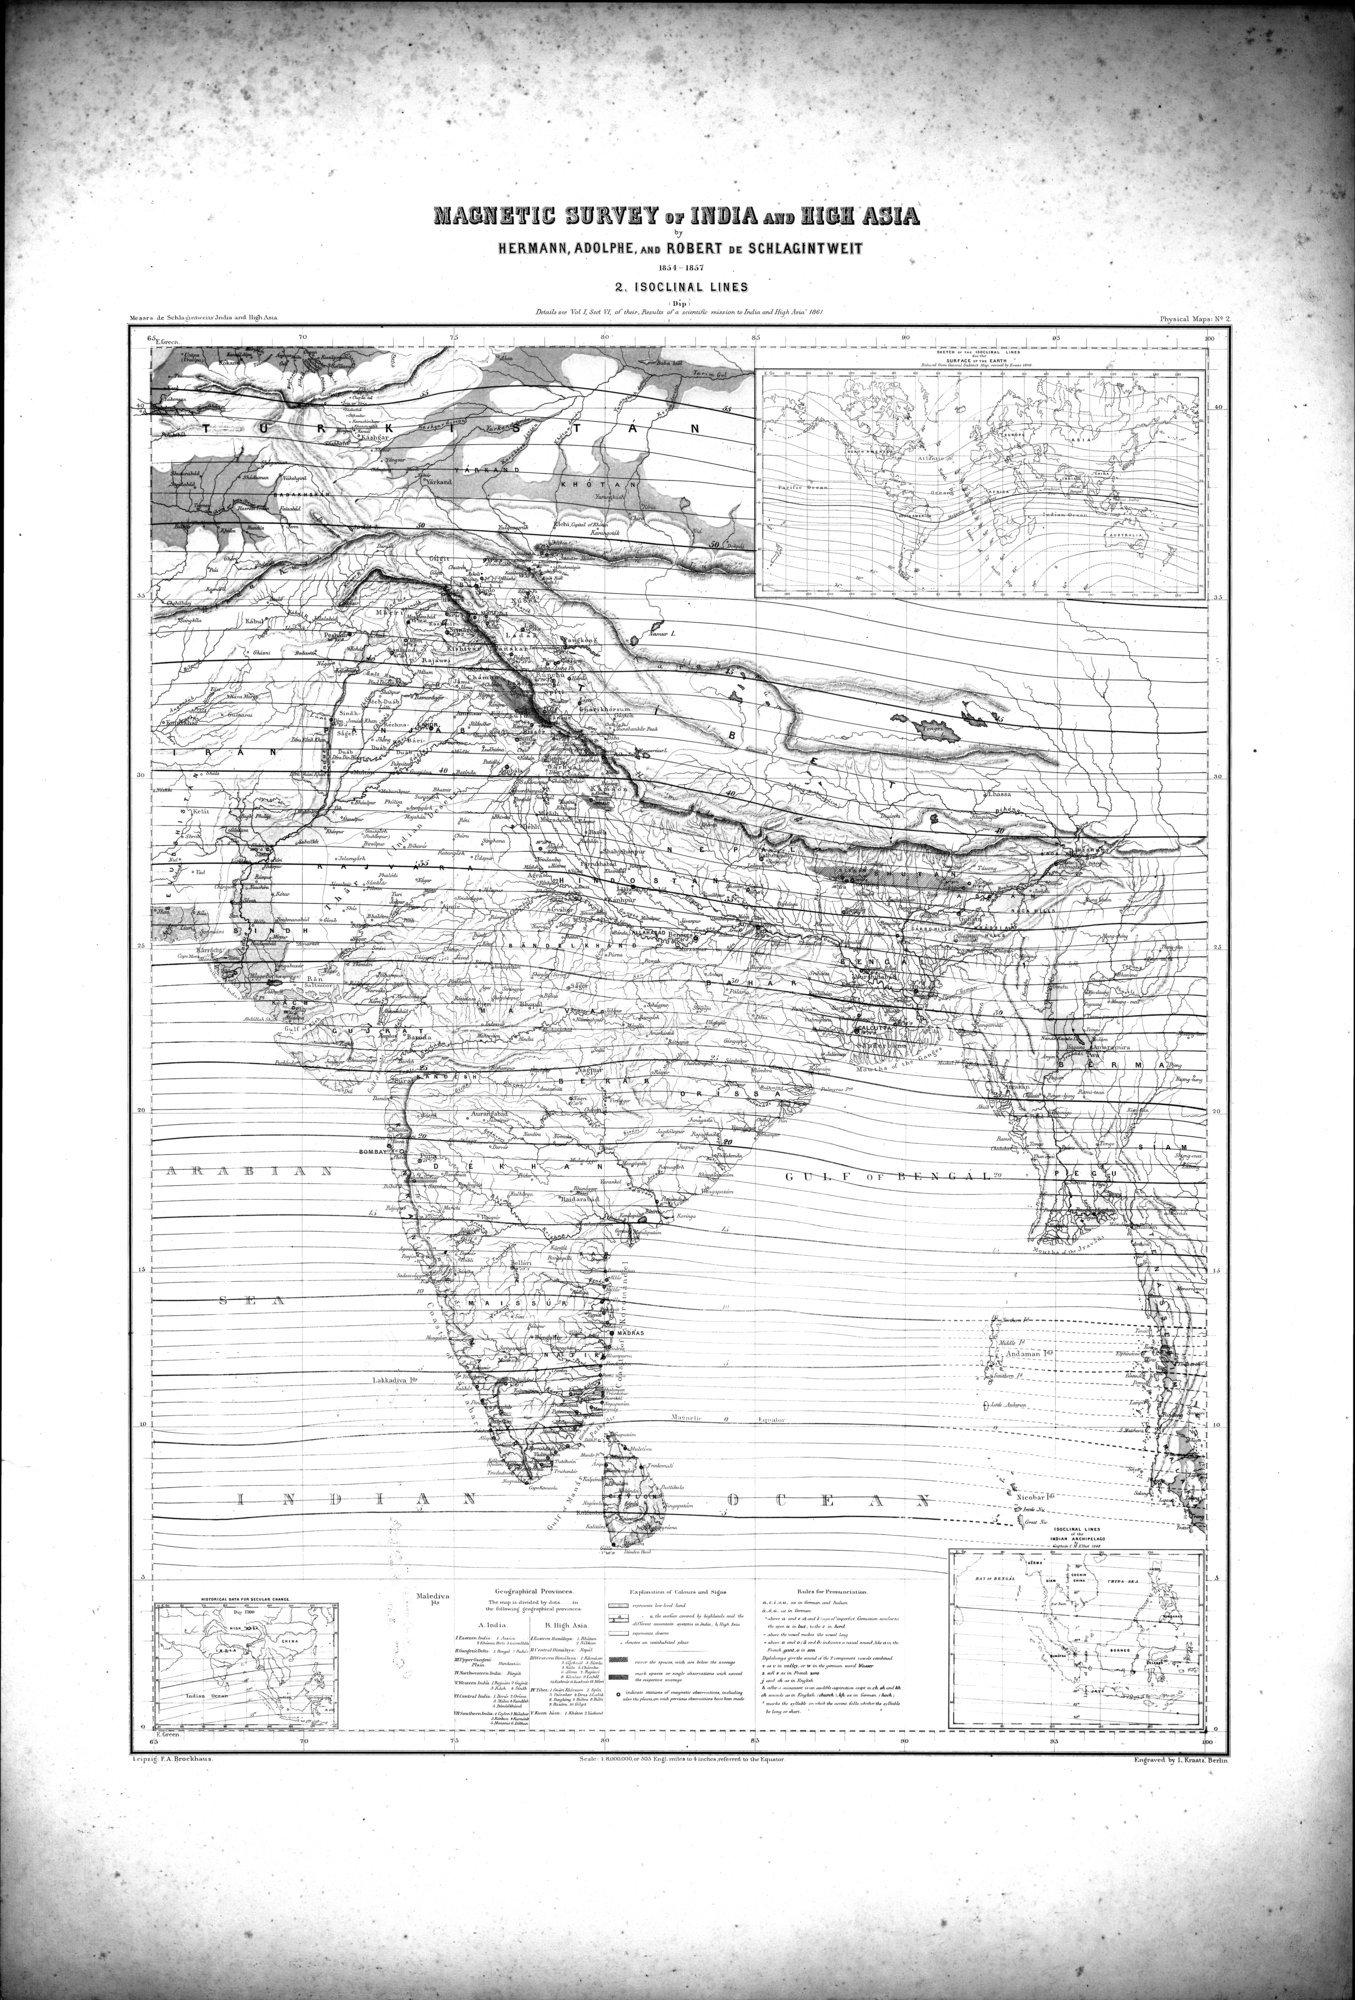 Results of a Scientific Mission to India and High Asia : vol.5 / Page 20 (Grayscale High Resolution Image)